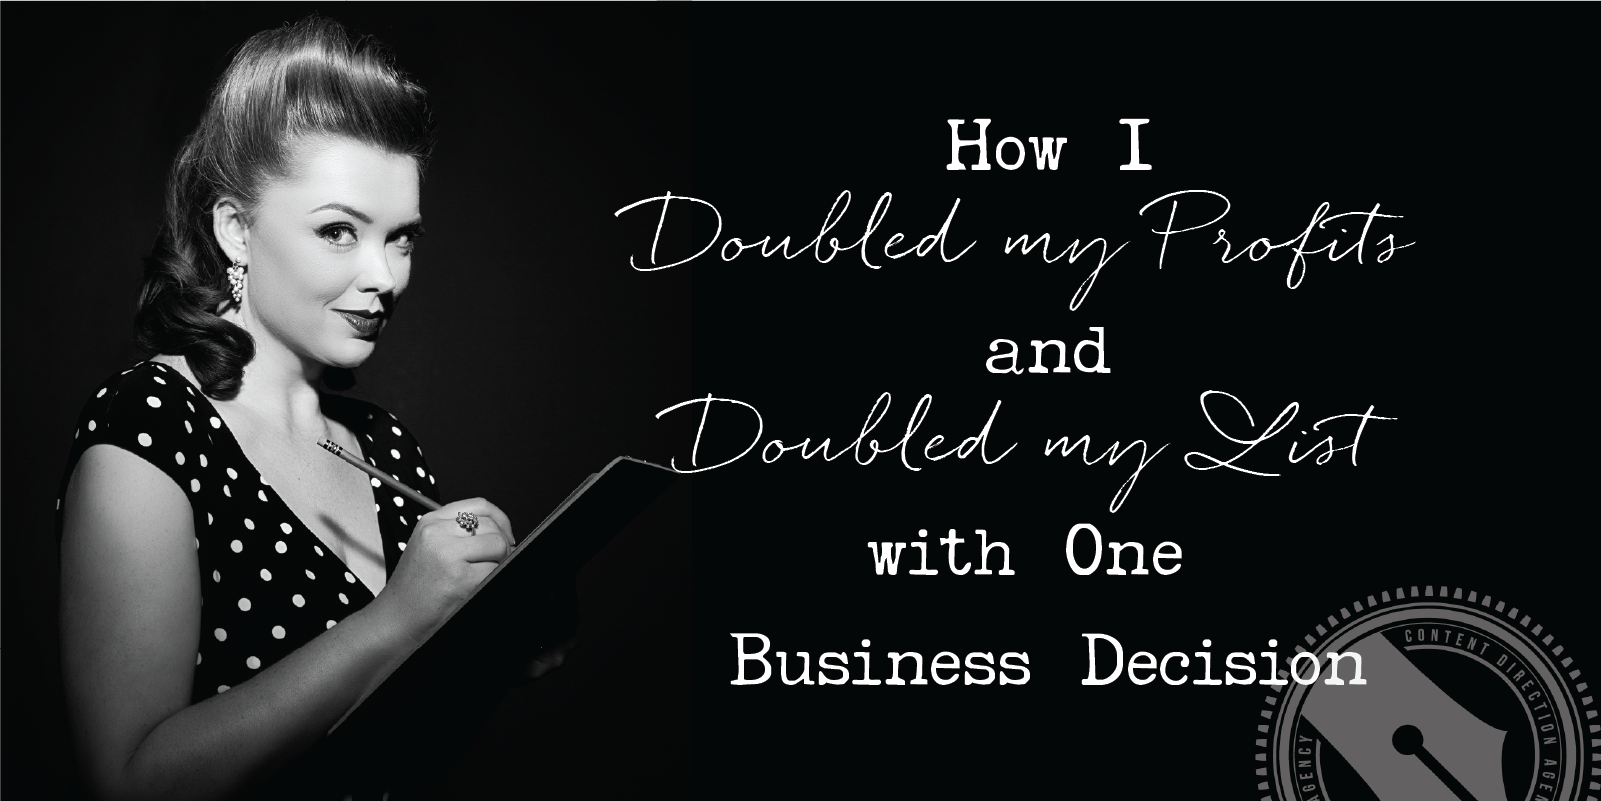 How I doubled my profits and list with one decision